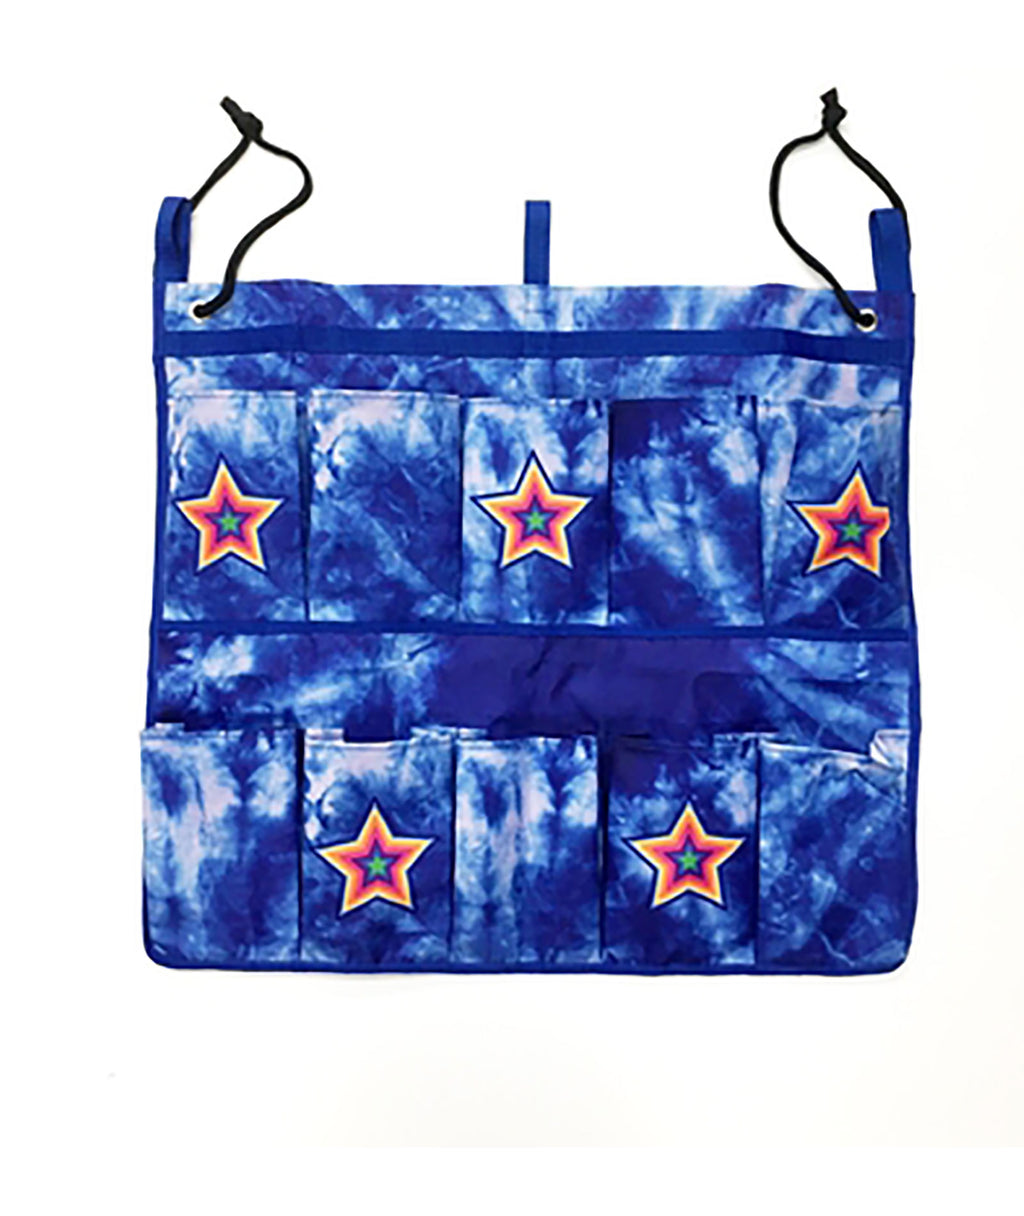 Confetti and Friends Blue Star Shoe Bag